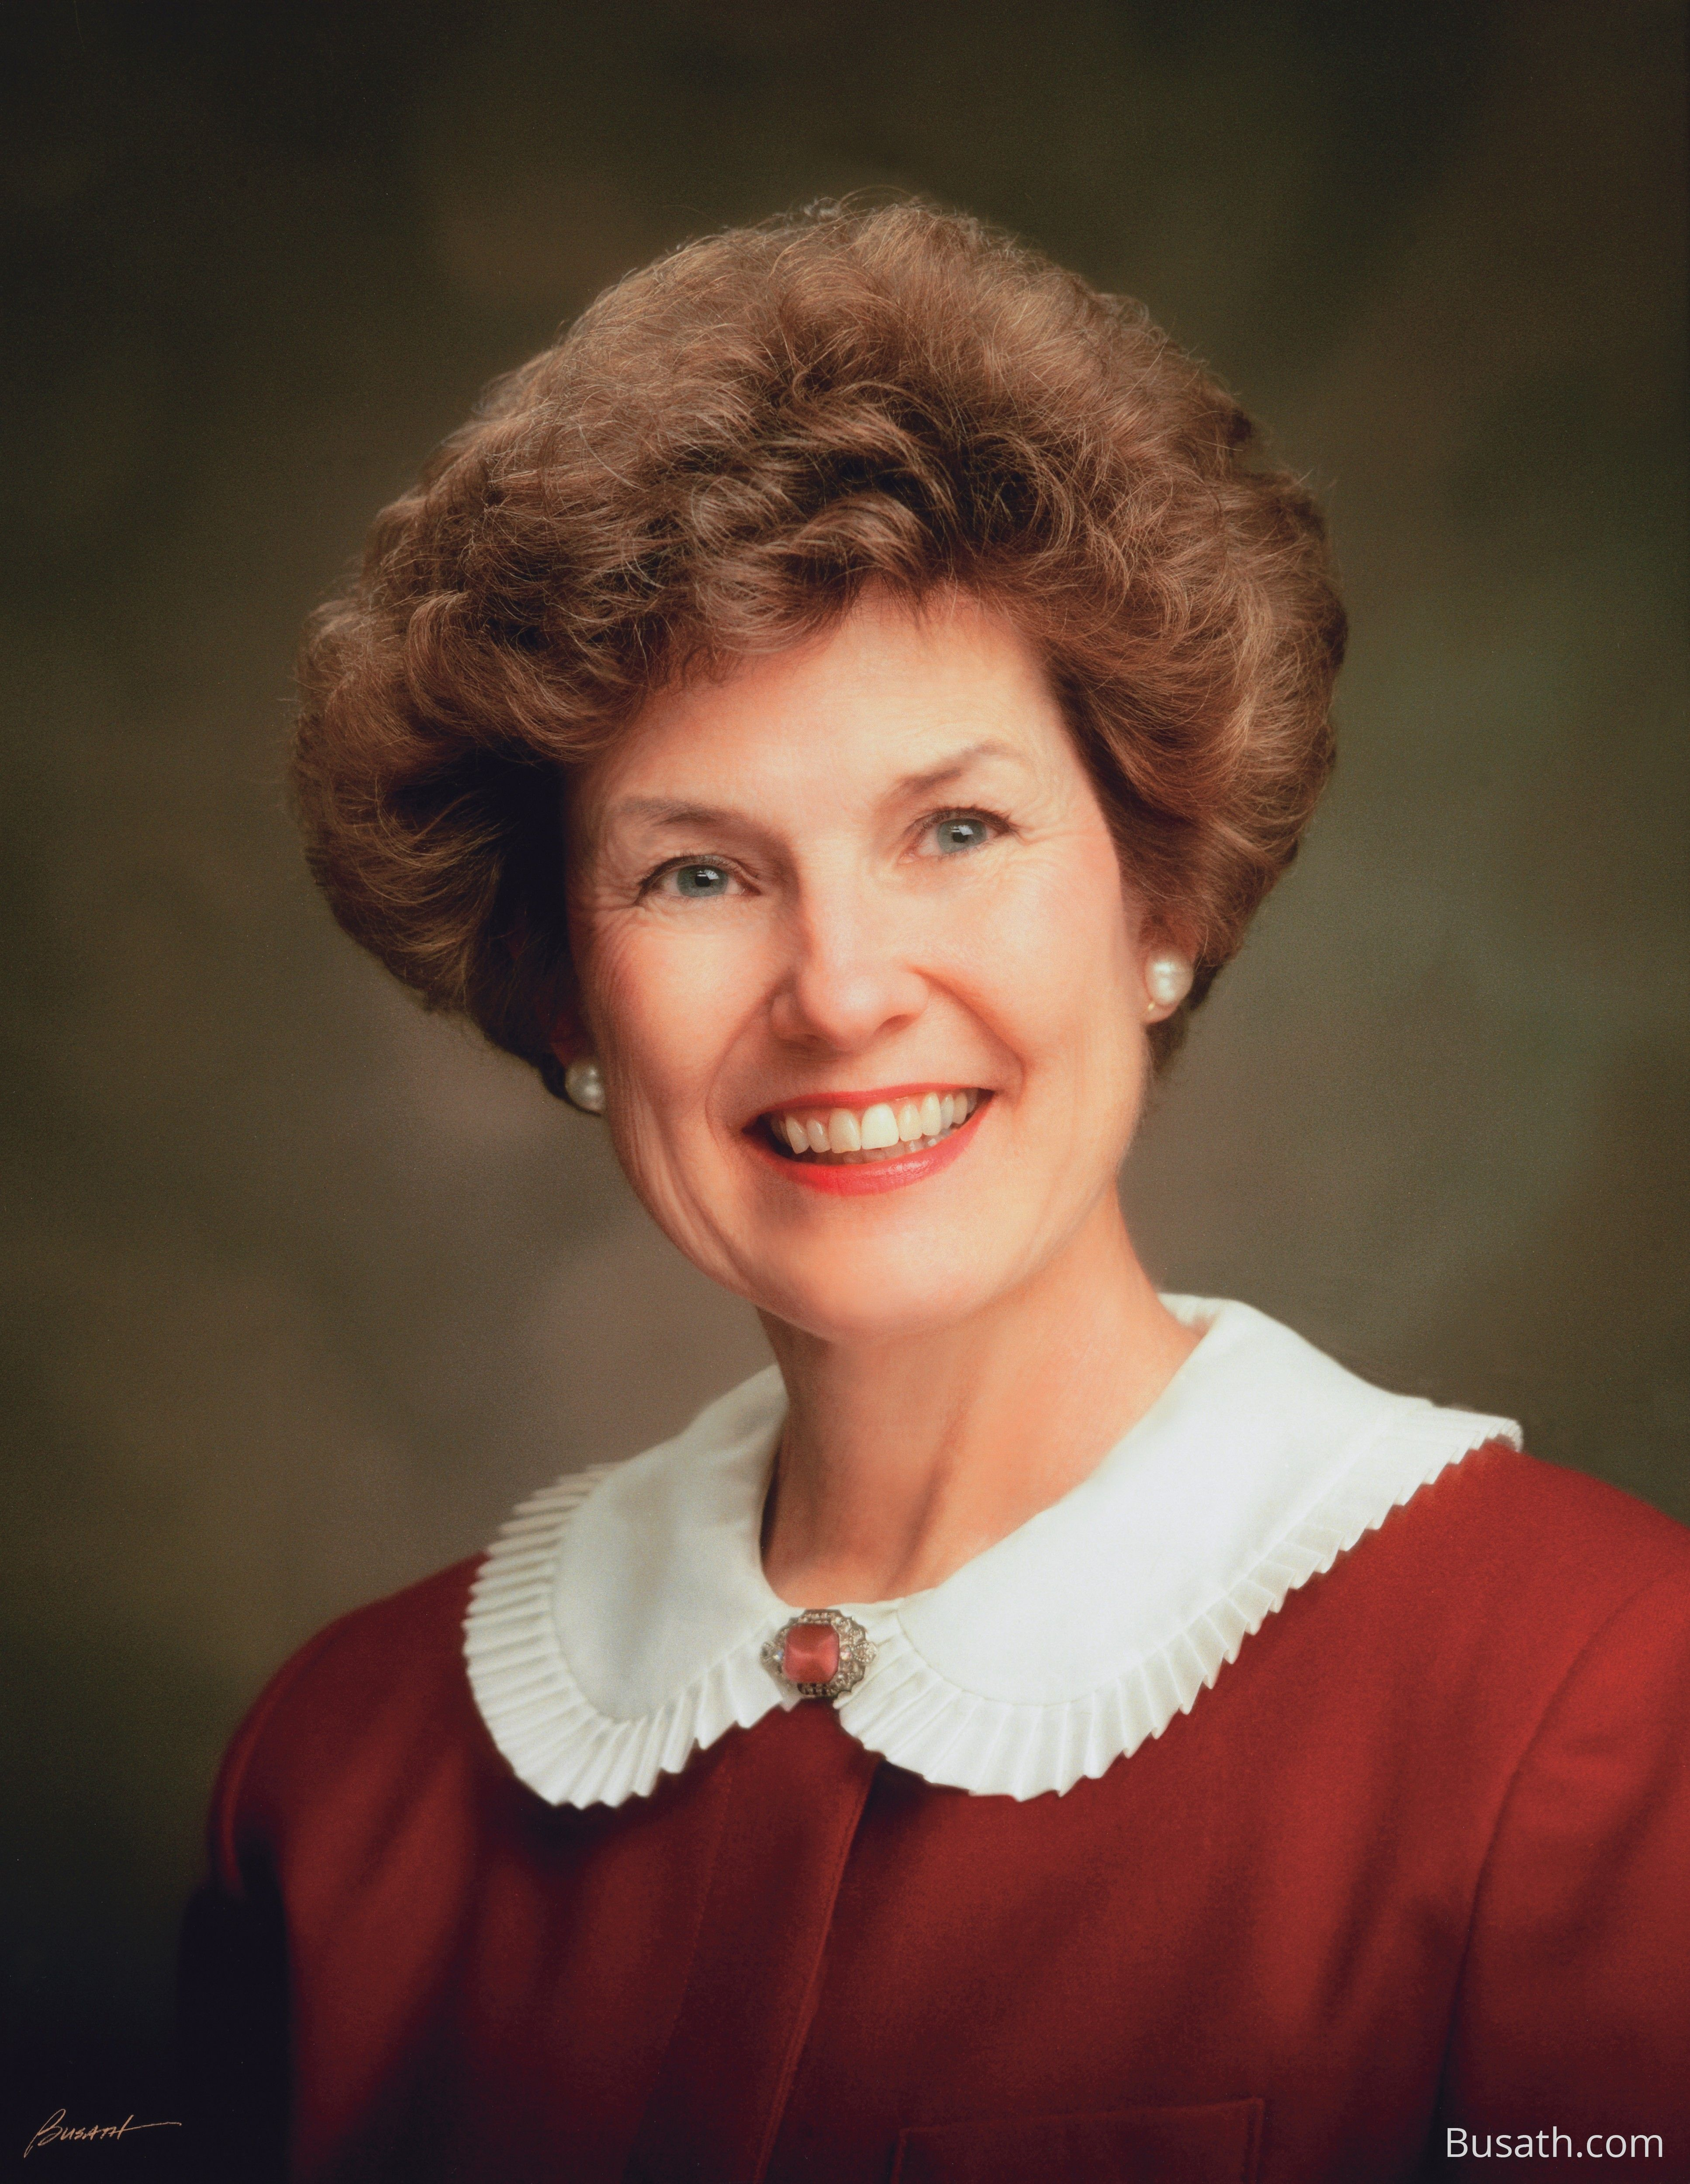 A portrait of Barbara Woodhead Winder, who served as the 11th general president of the Relief Society from 1984 to 1990.